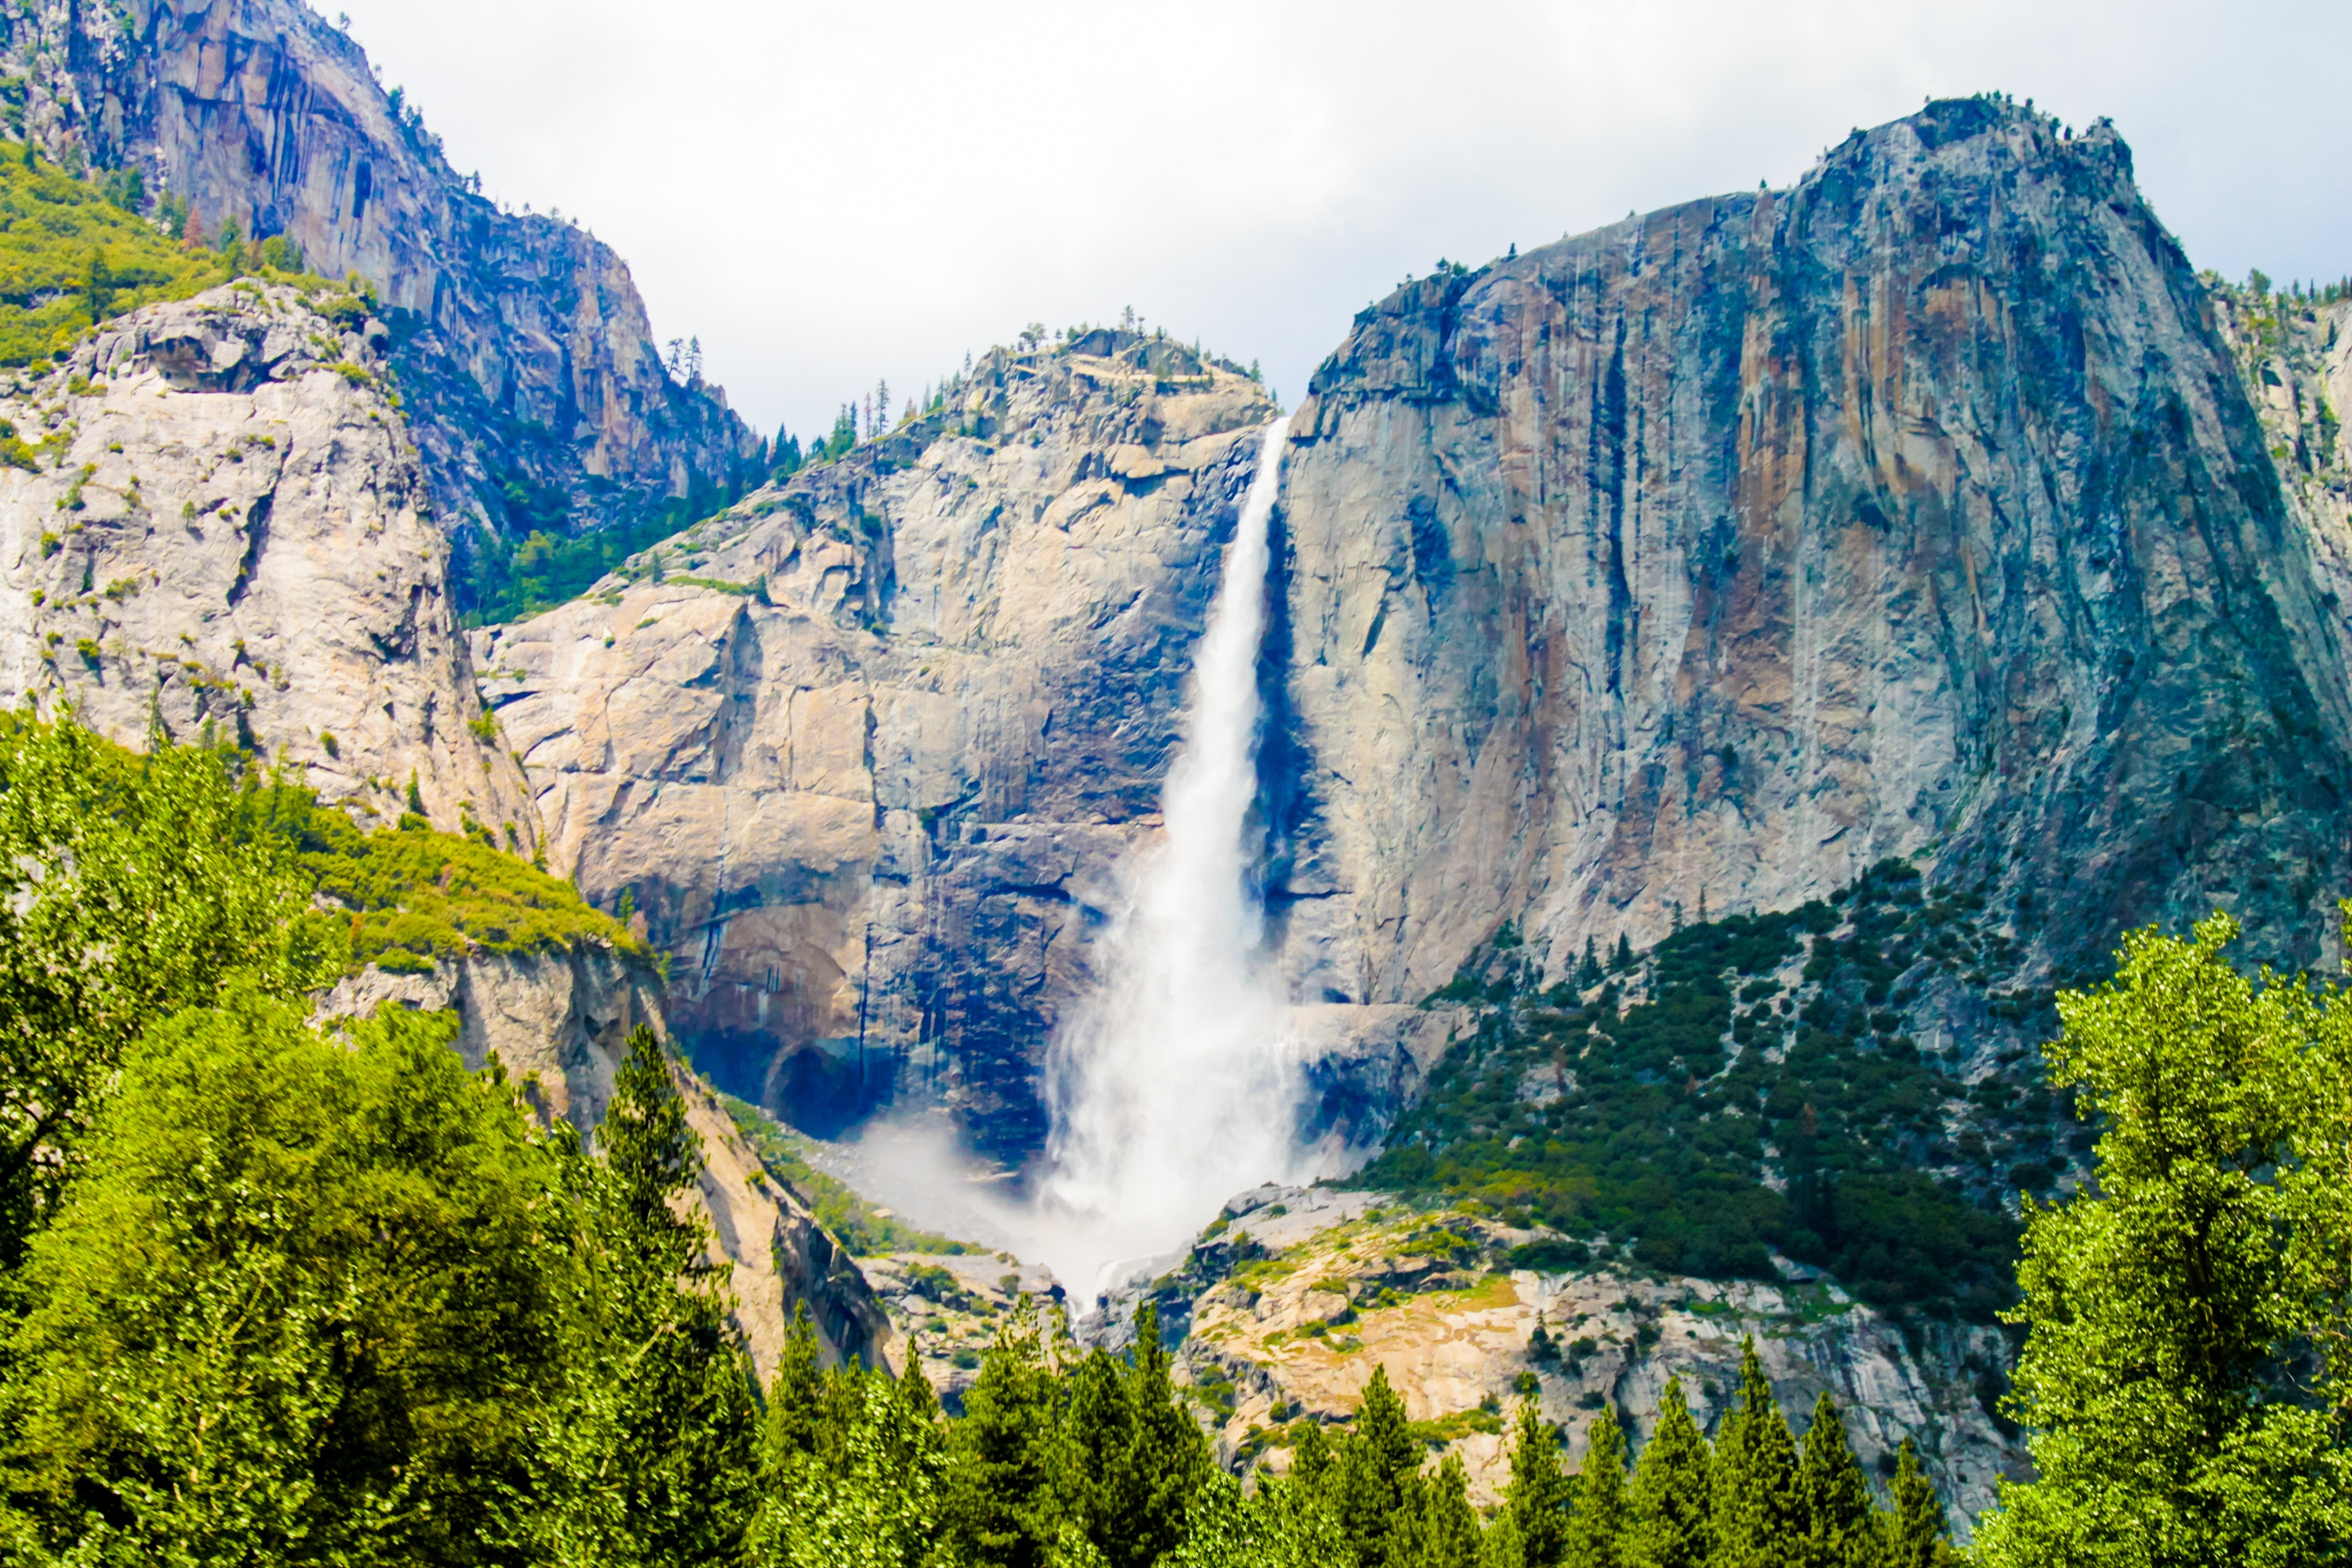 Waterfall images pexels free stock photos fetching more photos altavistaventures Gallery